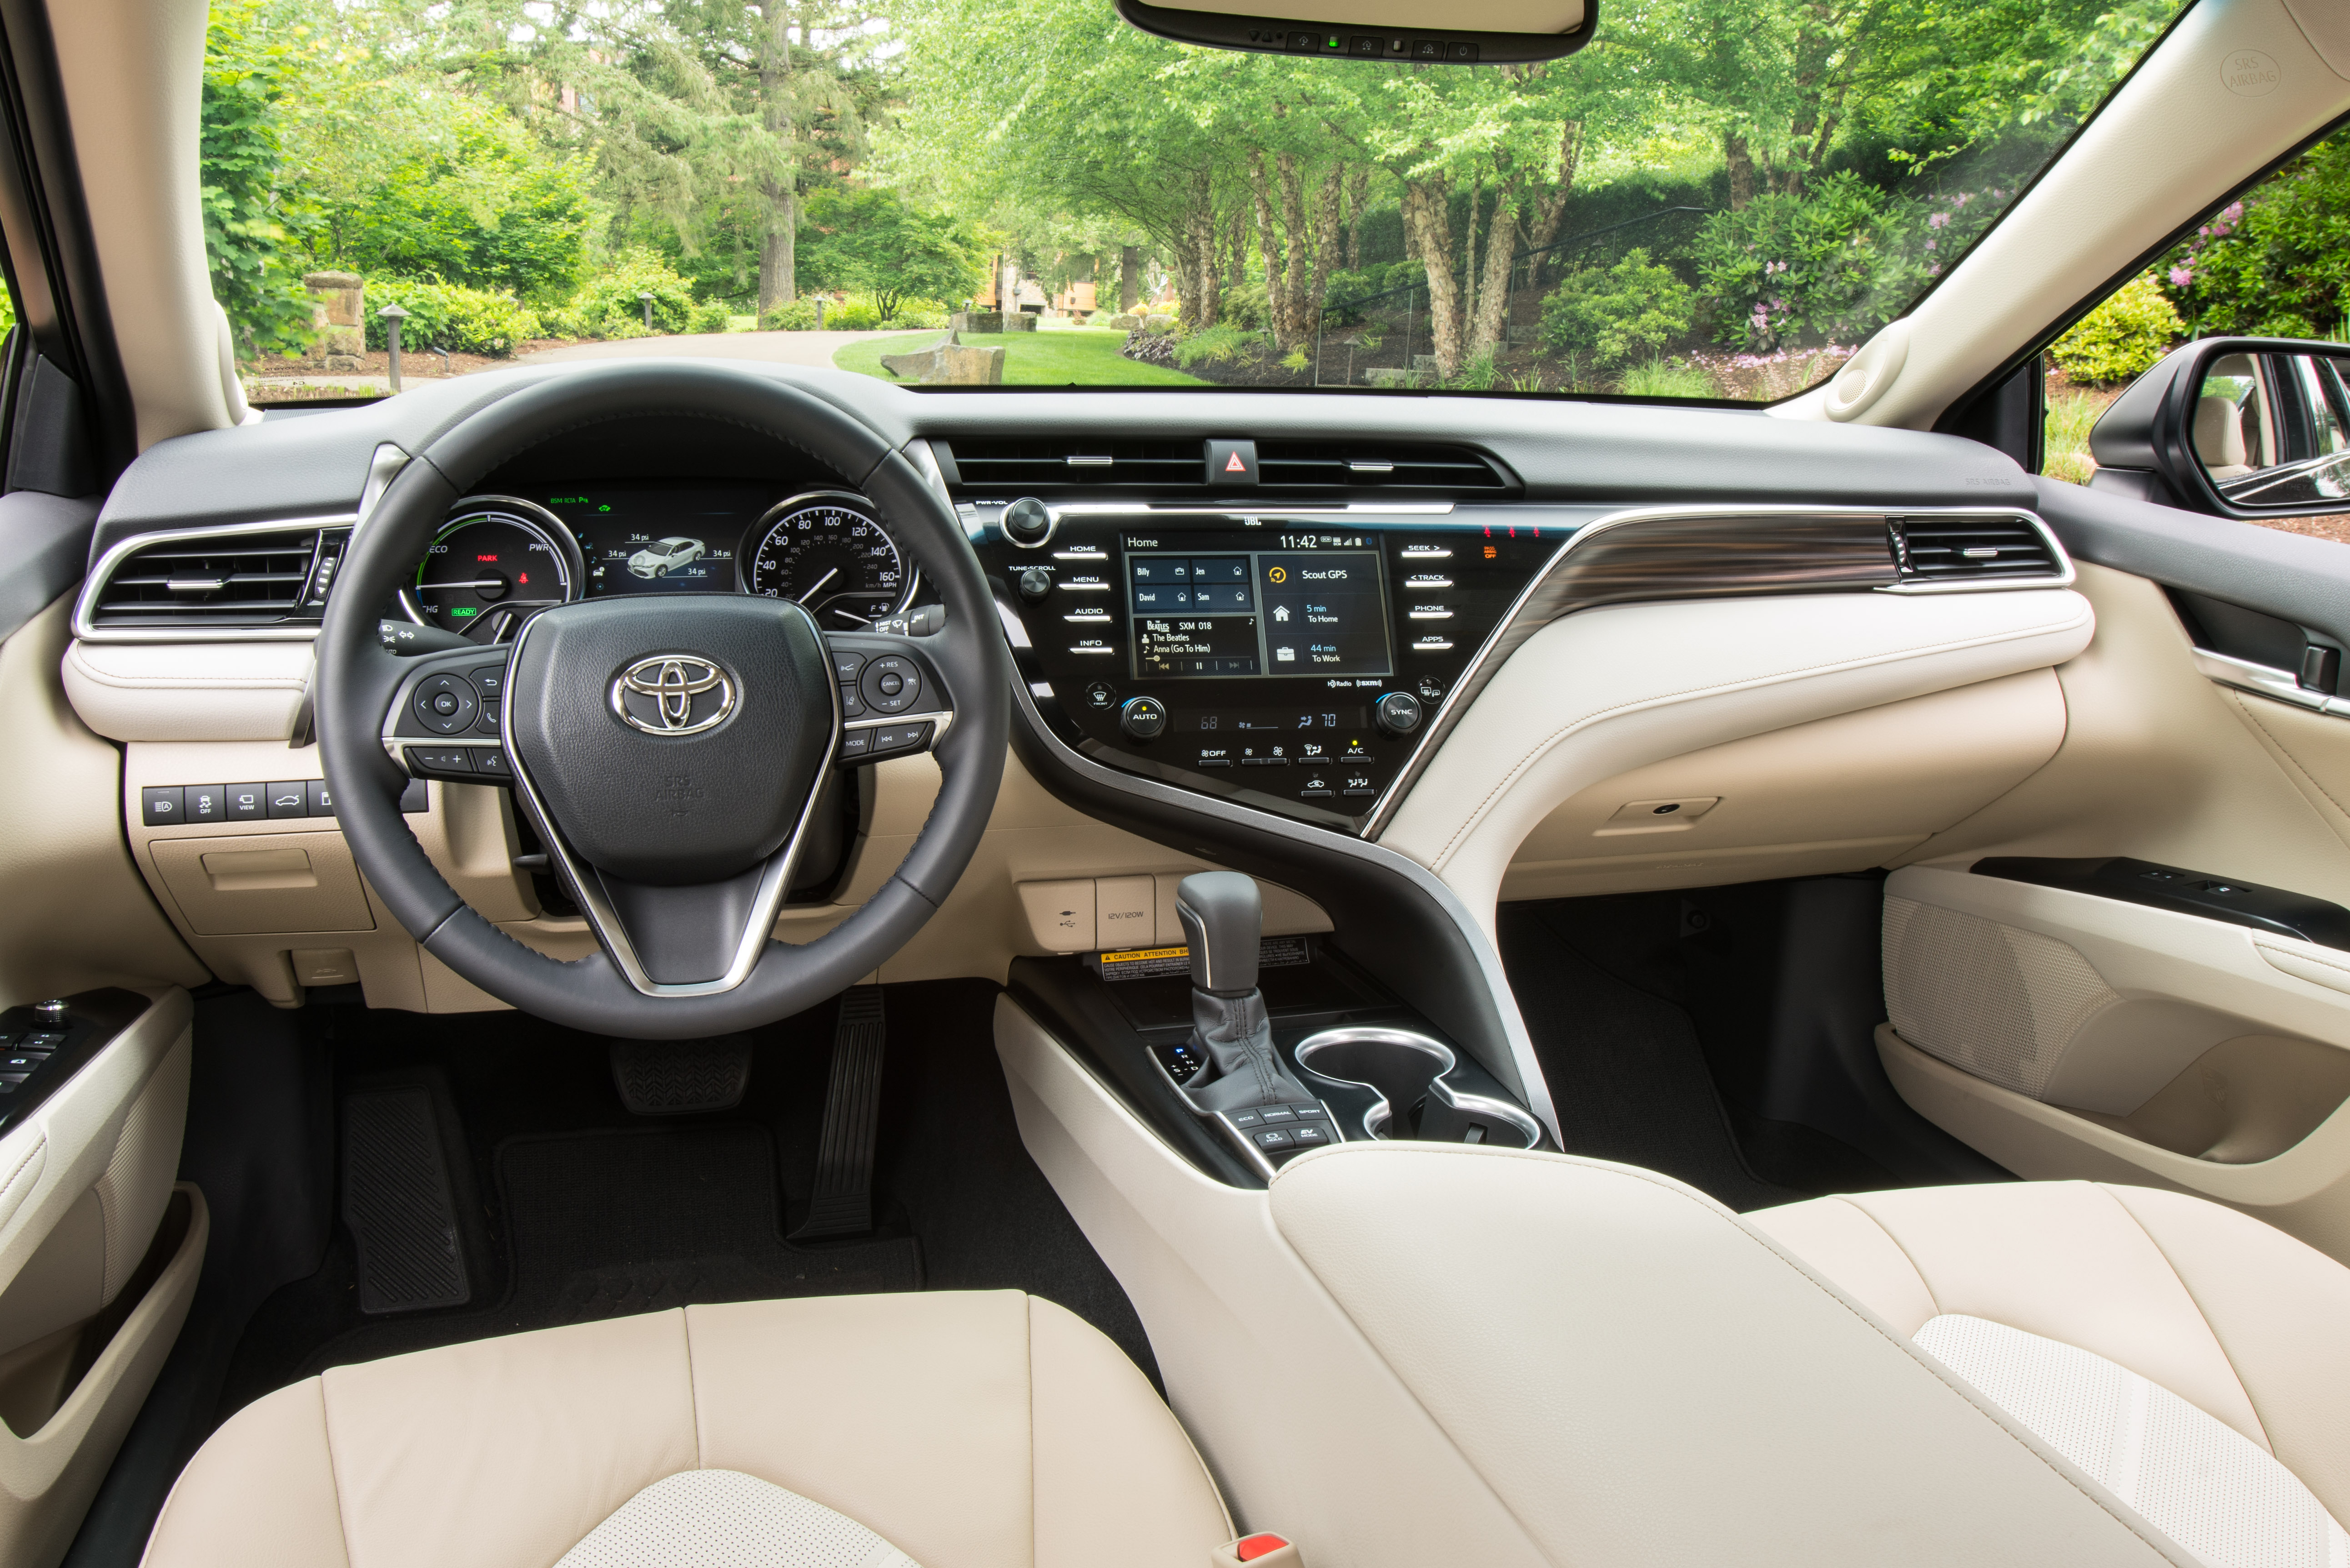 Toyota Camry best model